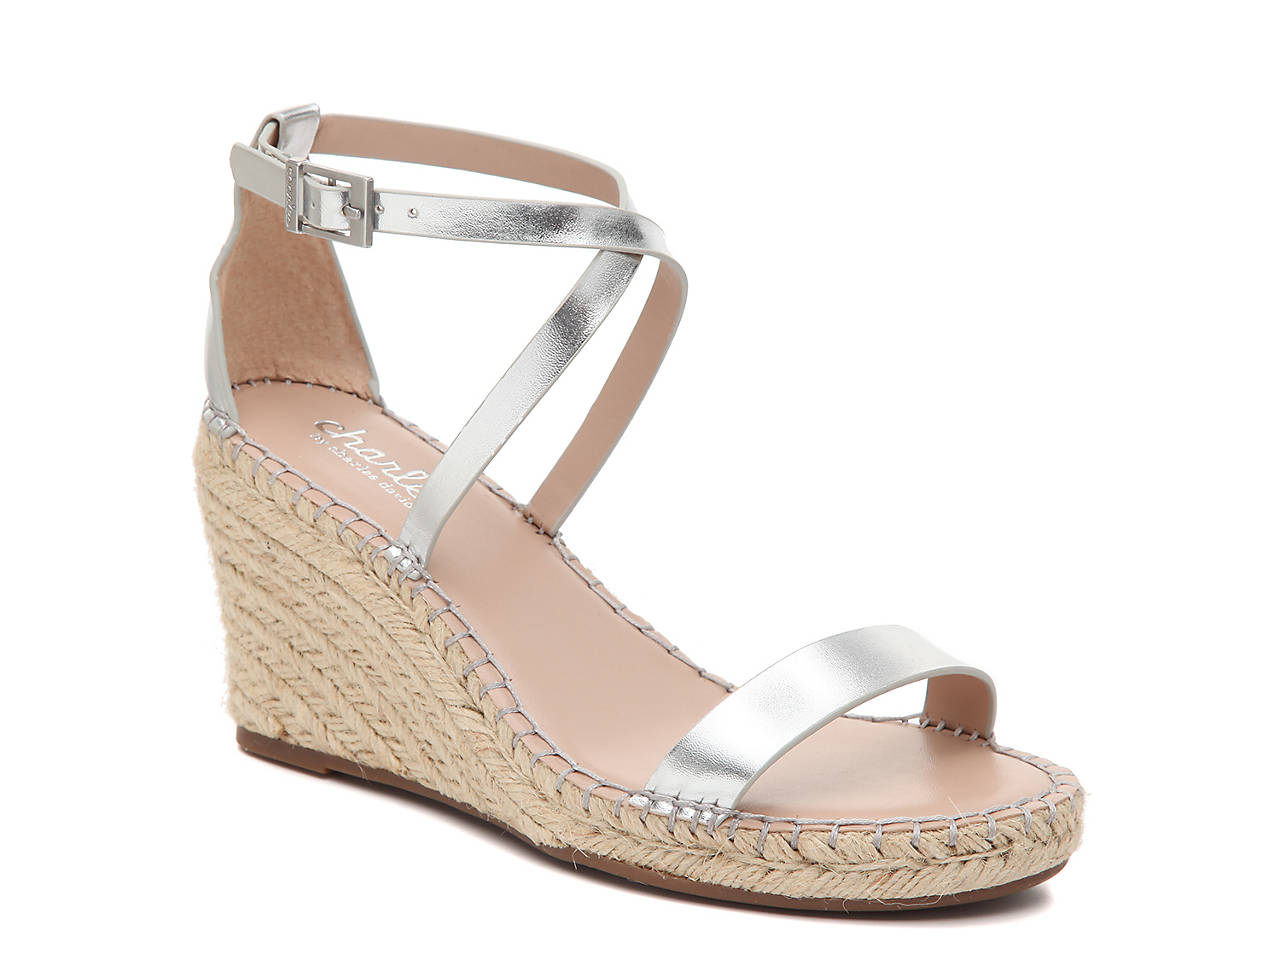 2df52f201e Charles by Charles David Nola Espadrille Wedge Sandal Women's Shoes ...